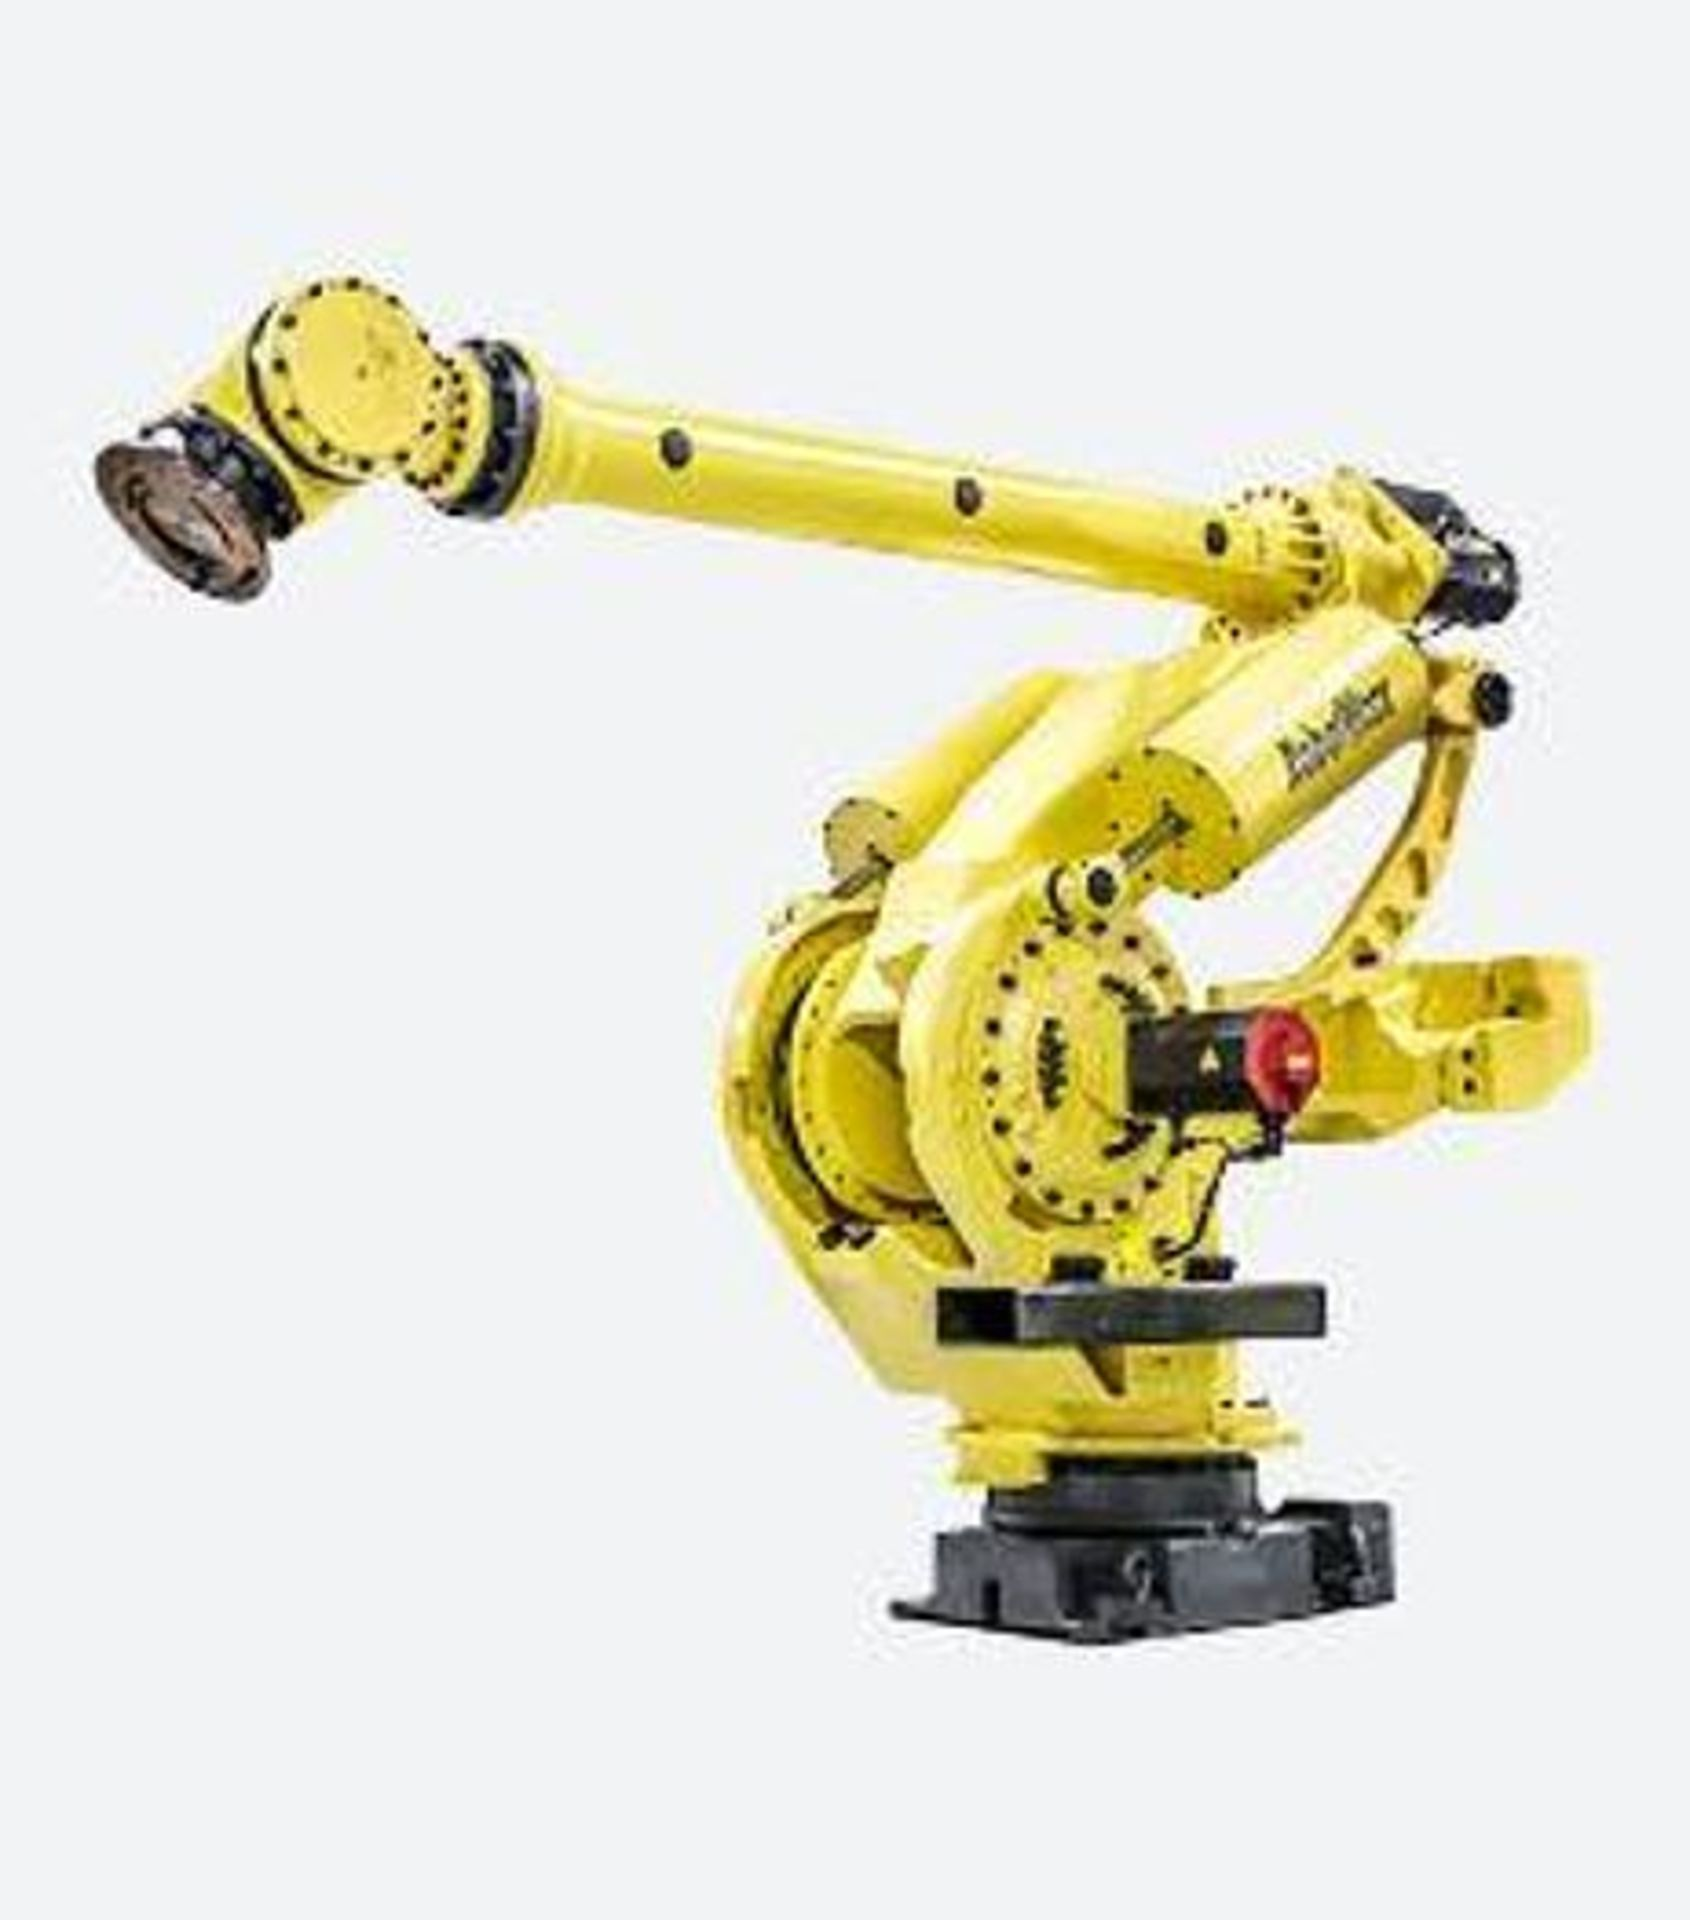 FANUC M900iA/400L 6 AXIS CNC ROBOT WITH R30iA CONTROLLER, CABLES & TEACH, SN F113428, YEAR 2011 - Image 6 of 6